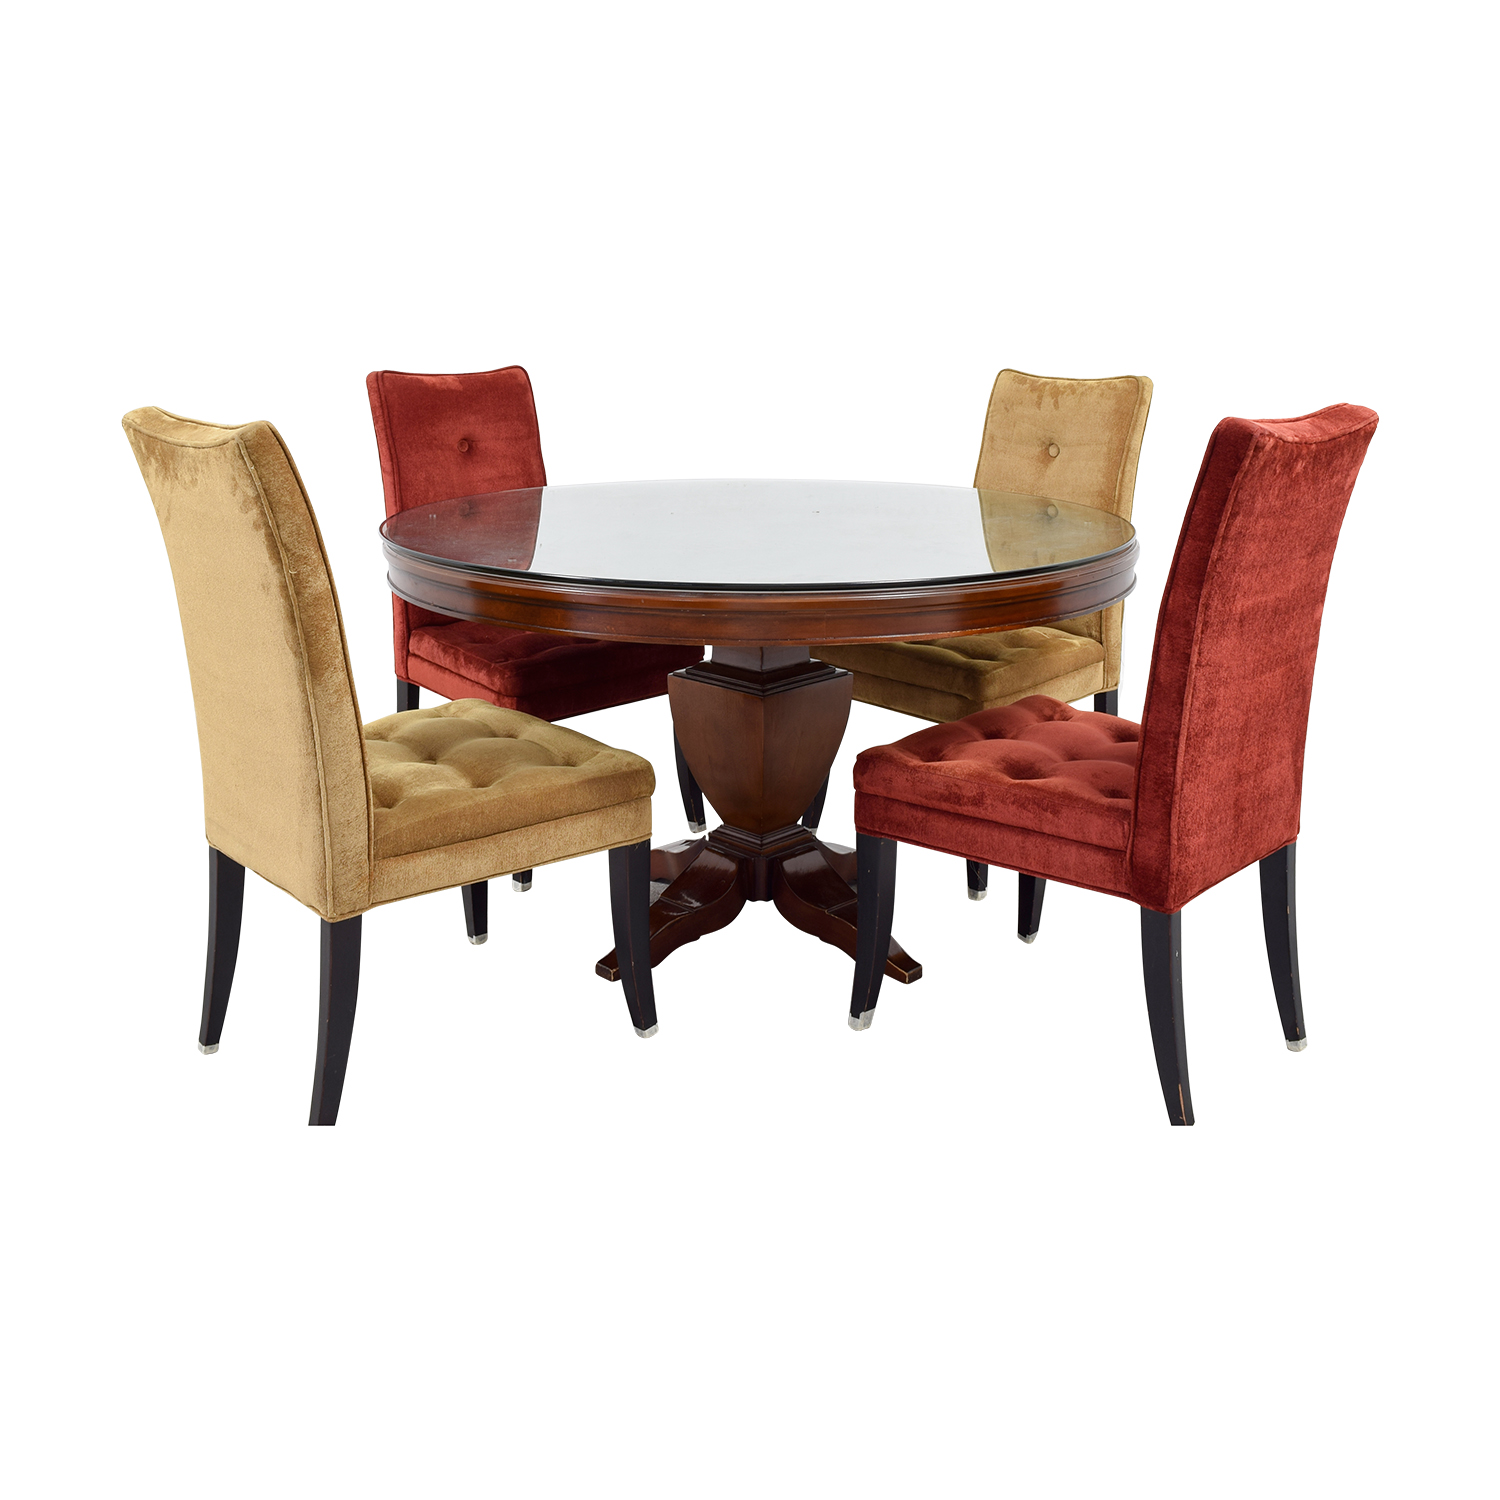 shop Bombay Artisan Round Dining Table with Red & Beige Chairs Bombay